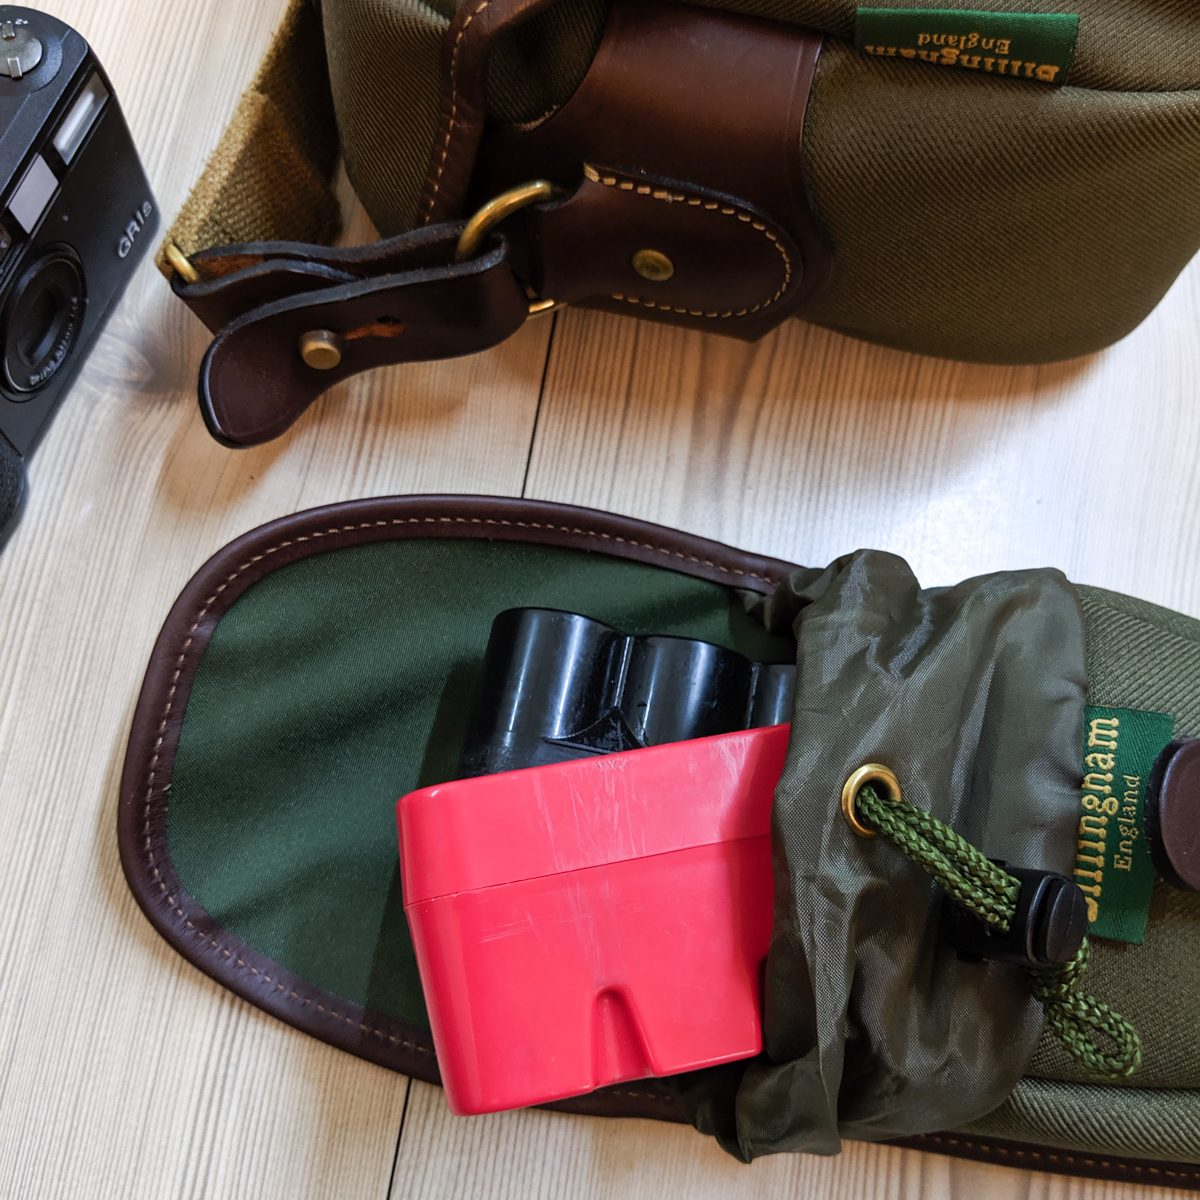 JCH-cases-Ricoh-GR1s-and-Billingham-Hadley-Small-Pro-with-AVEA-7